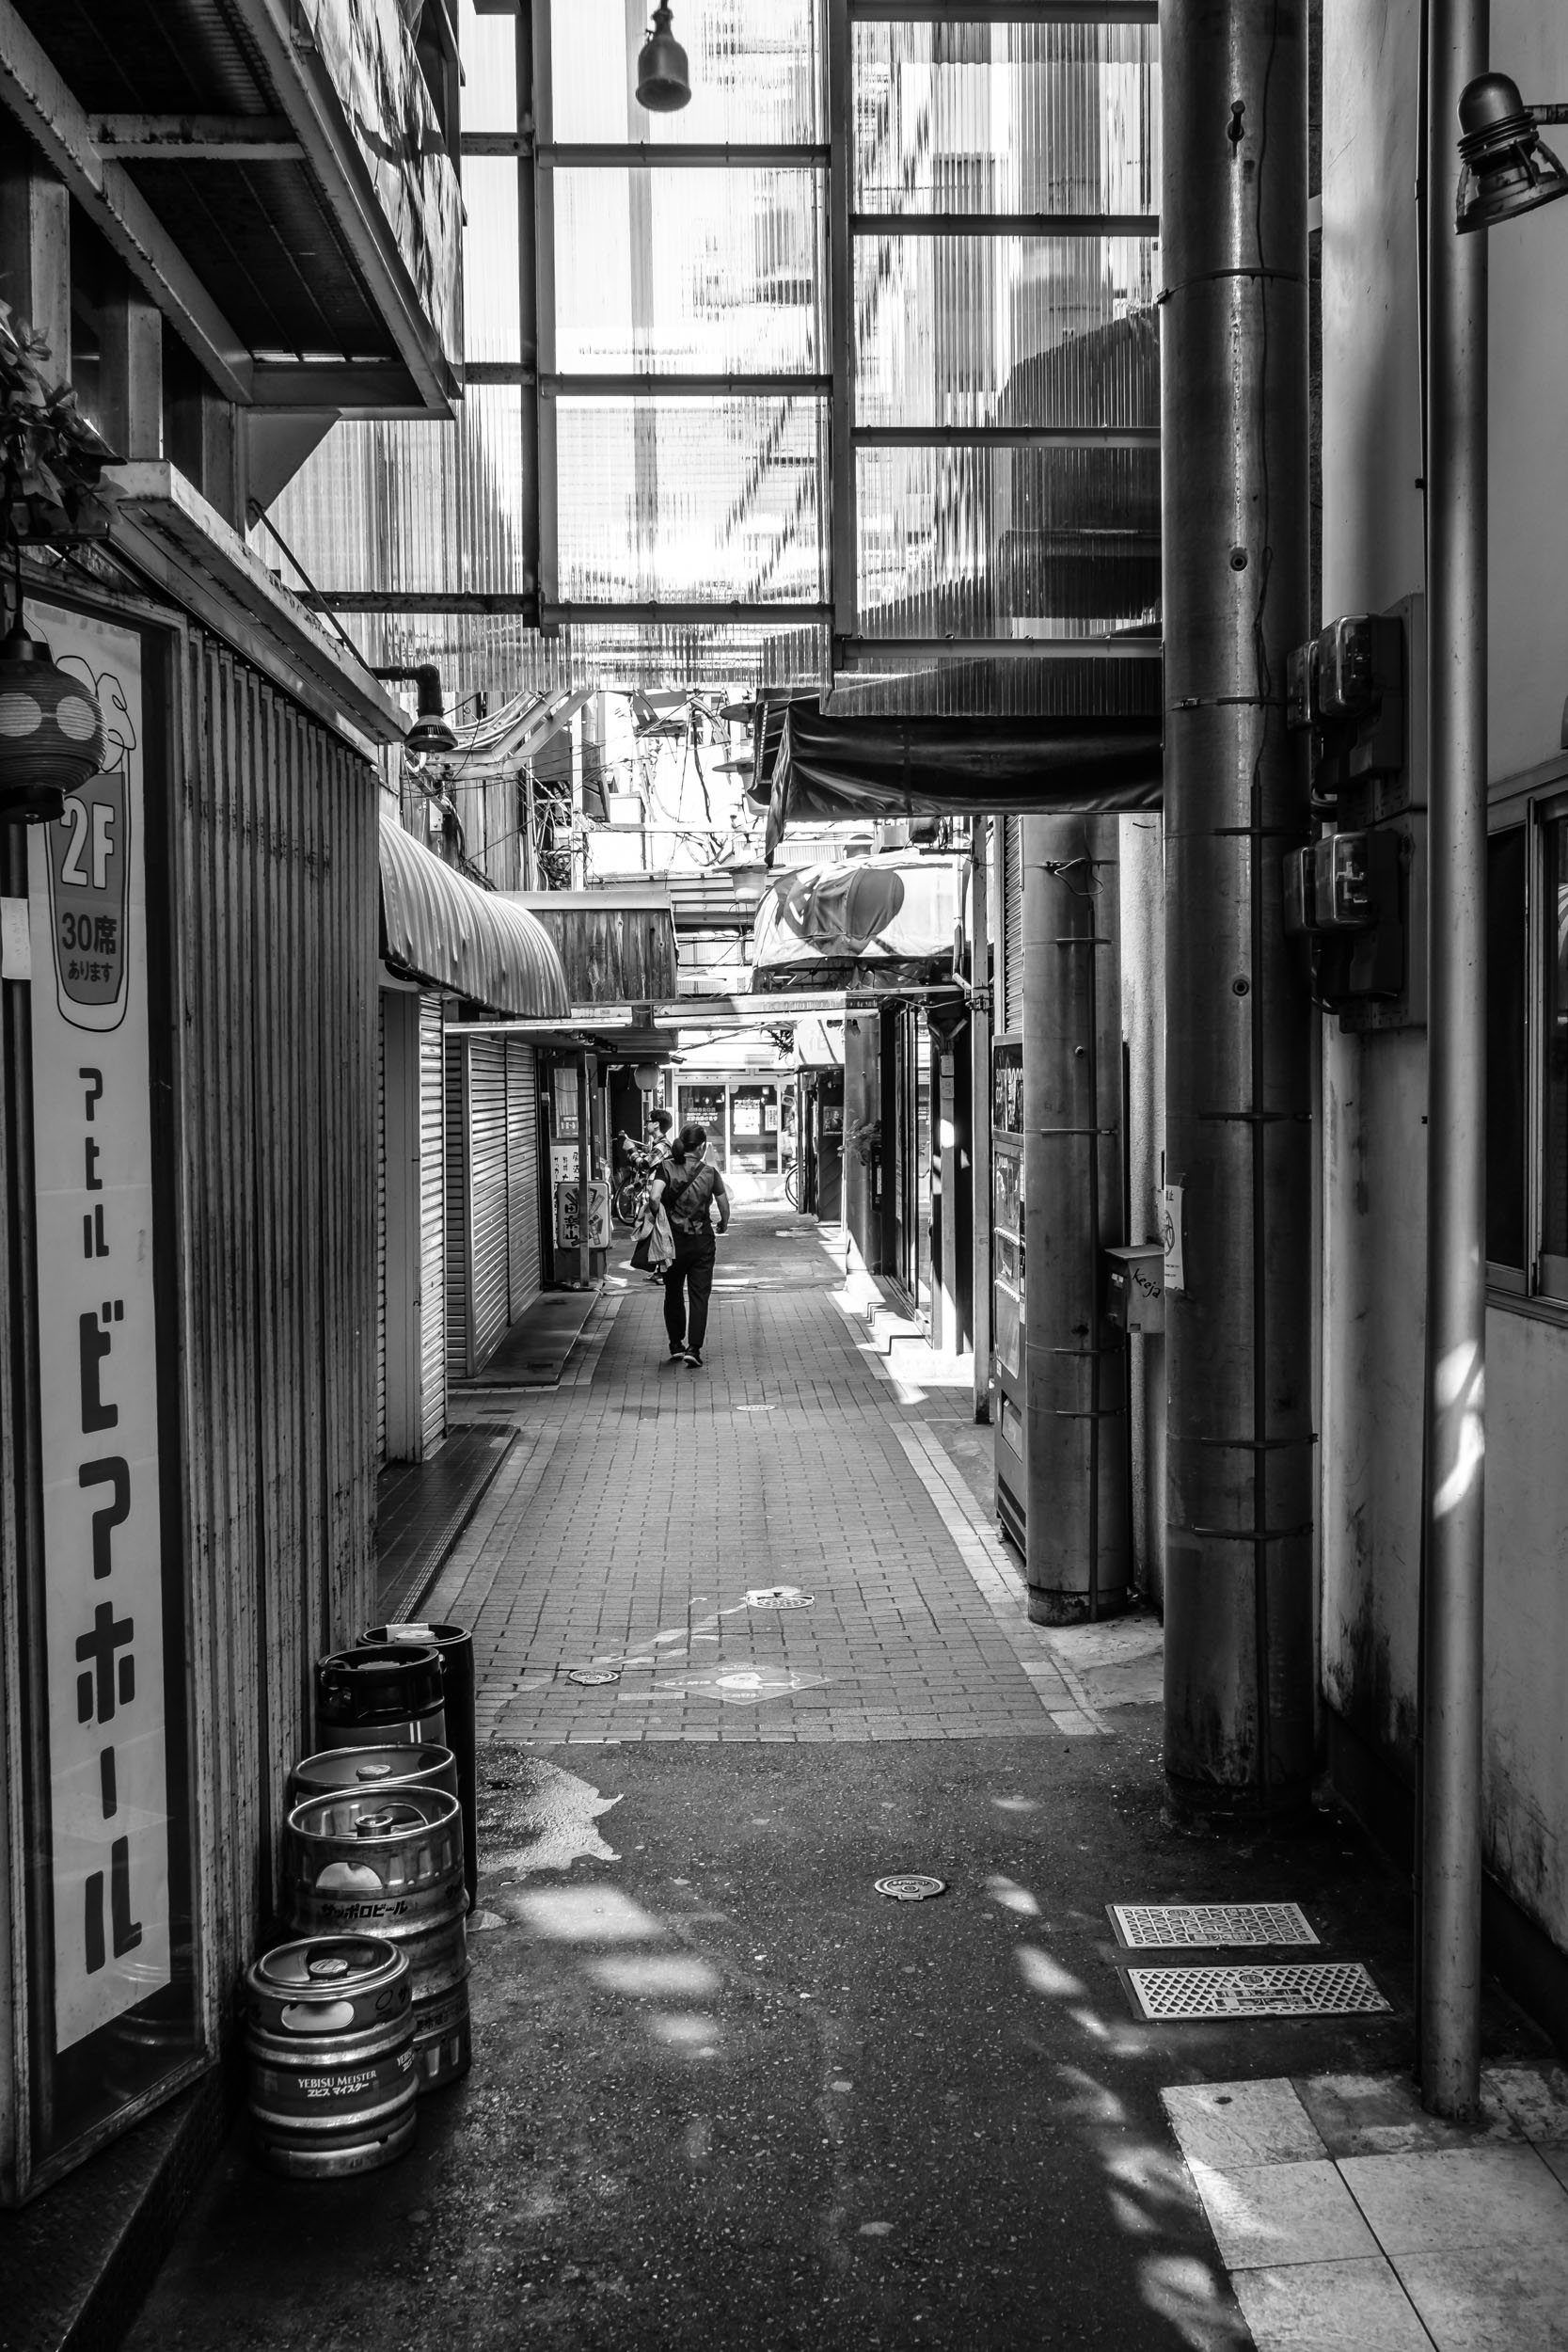 Harmonica alley in the morning - no one there